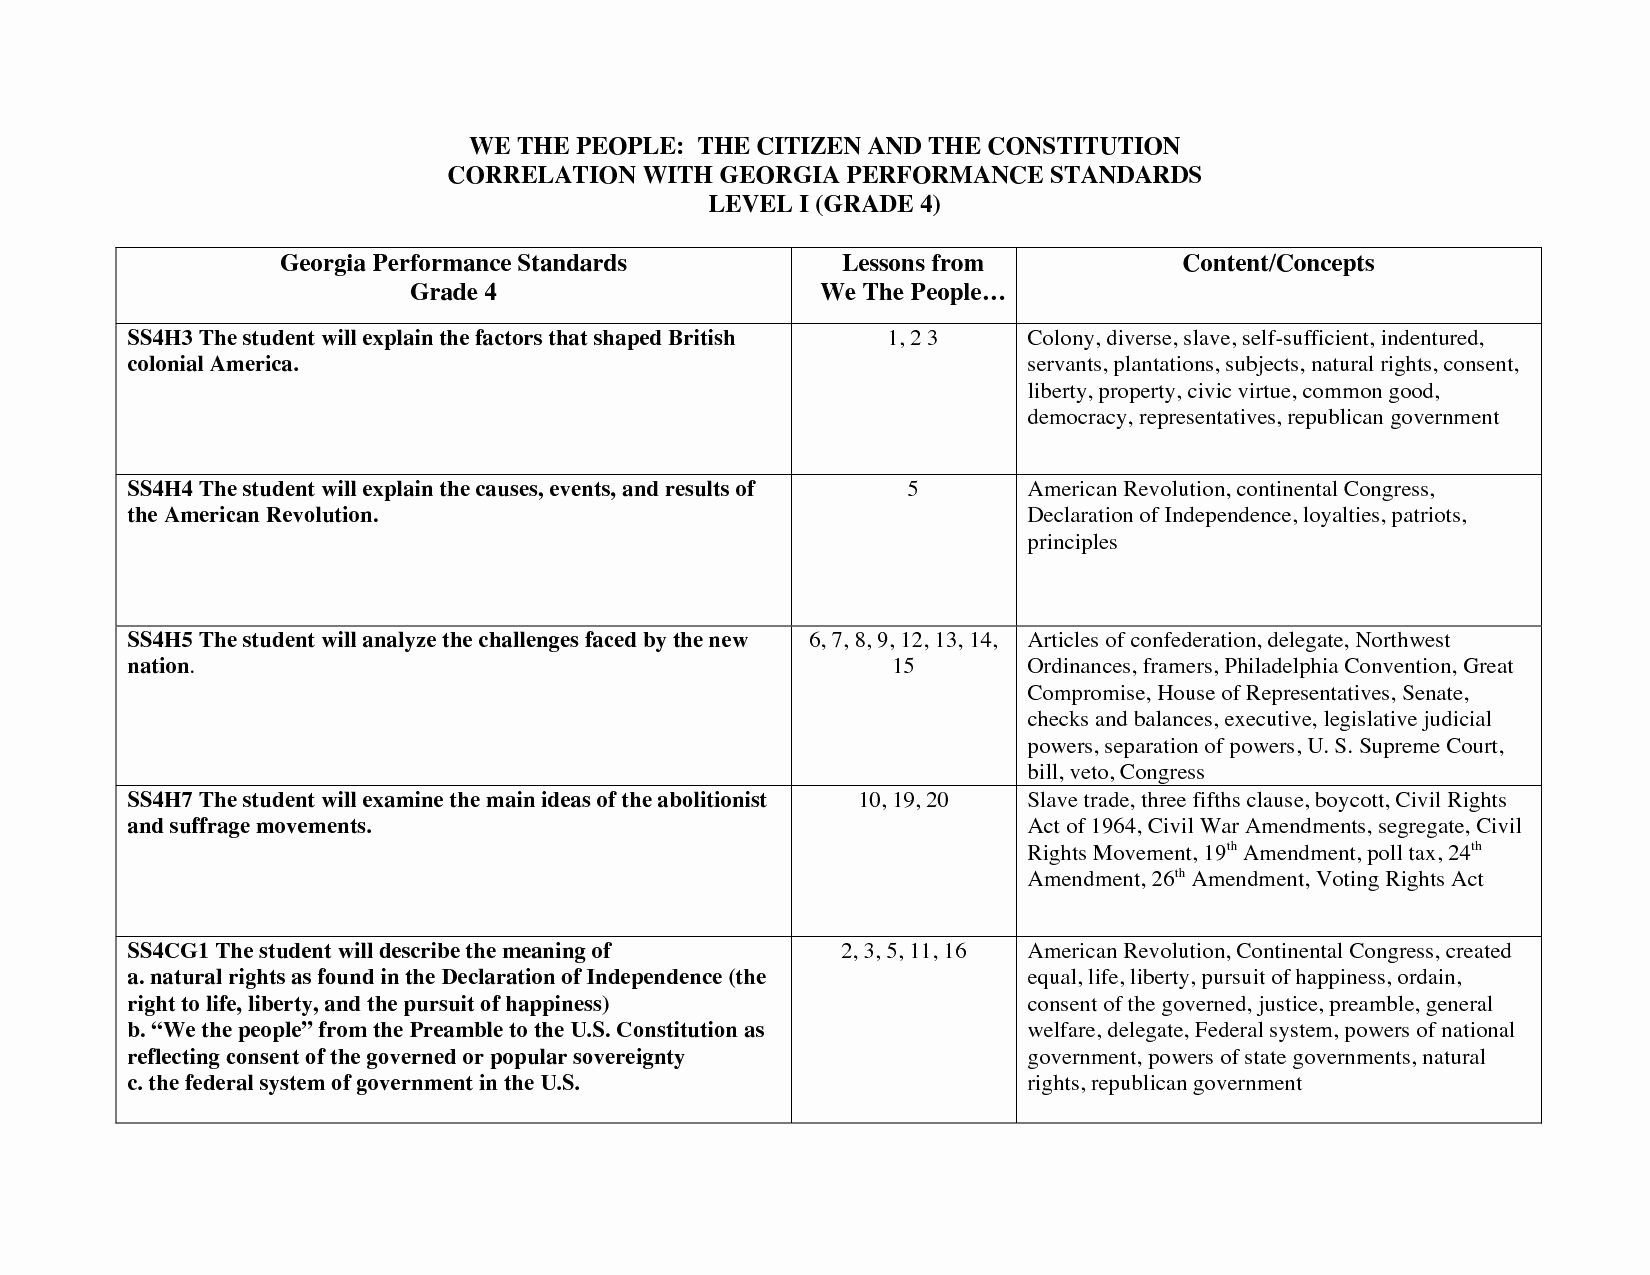 Articles Of Confederation Worksheet Answers Unique Articles Confederation Worksheet Answers